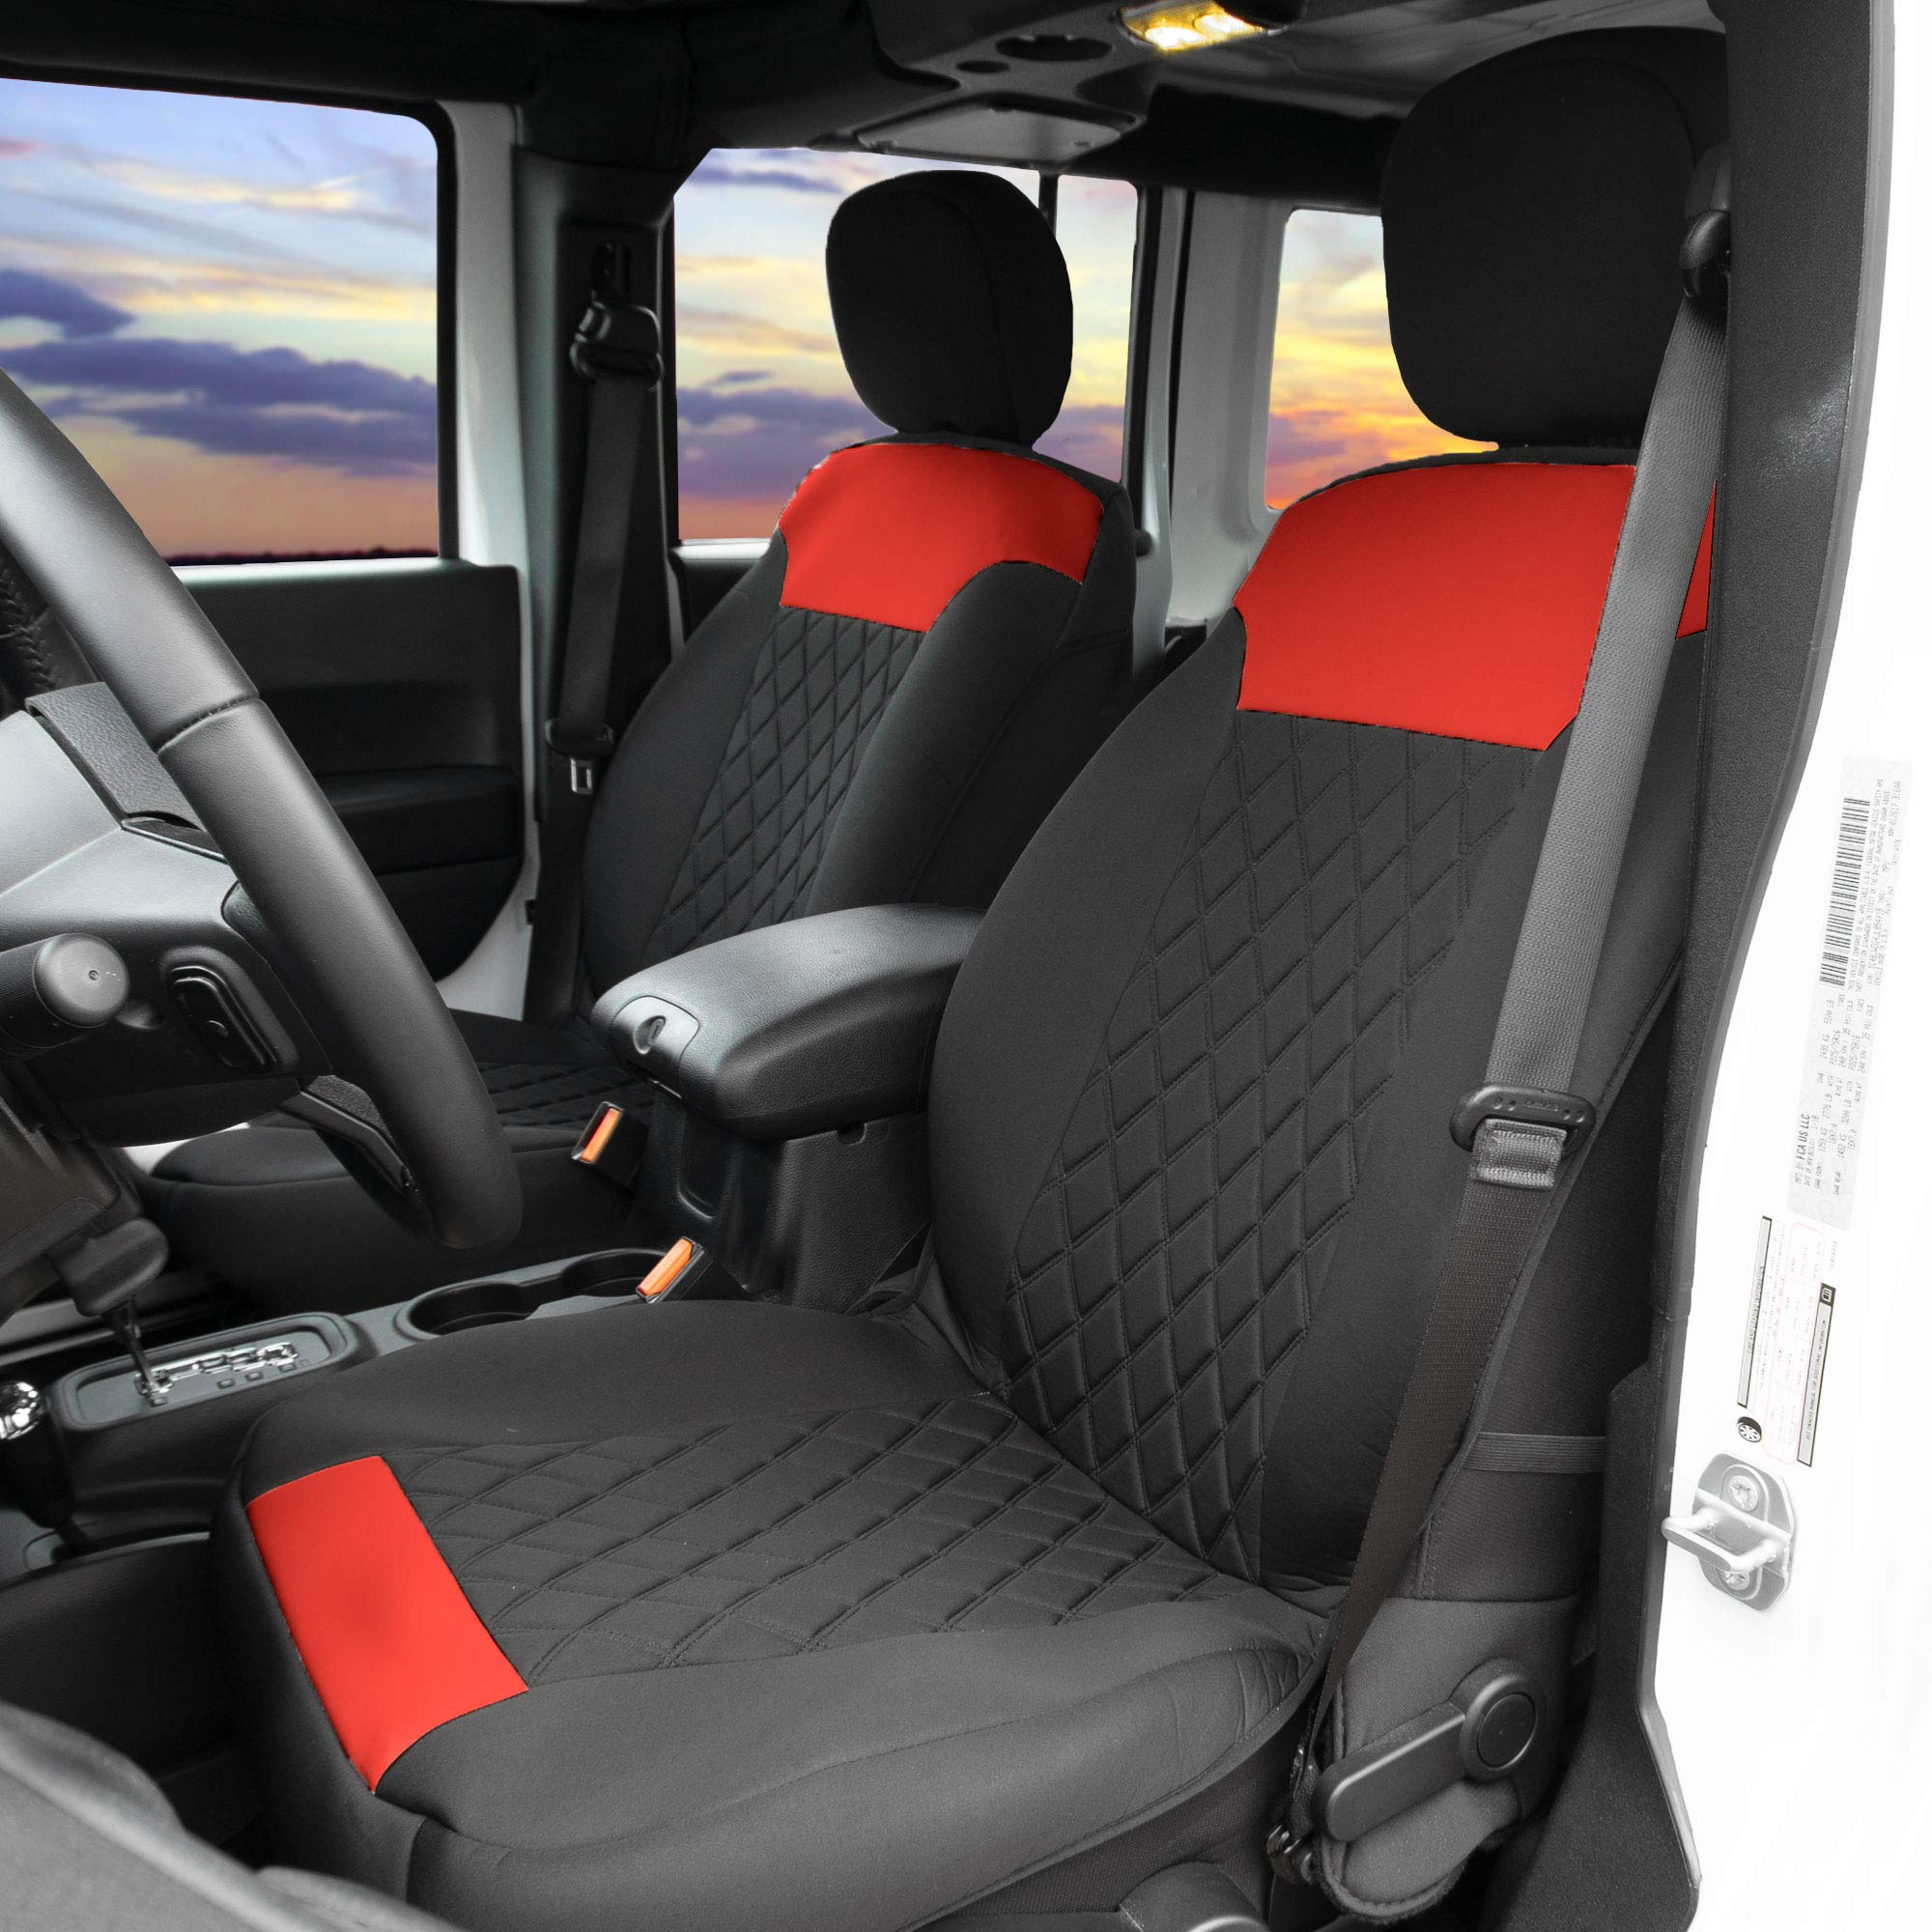 FH Group FB089REDBLACK102 Neosupreme Car Seat Cushion Set of Two Front Bucket Covers Quality Red/Black, Water Resistant, Non-Slip Backing, Easy Installation by FH Group